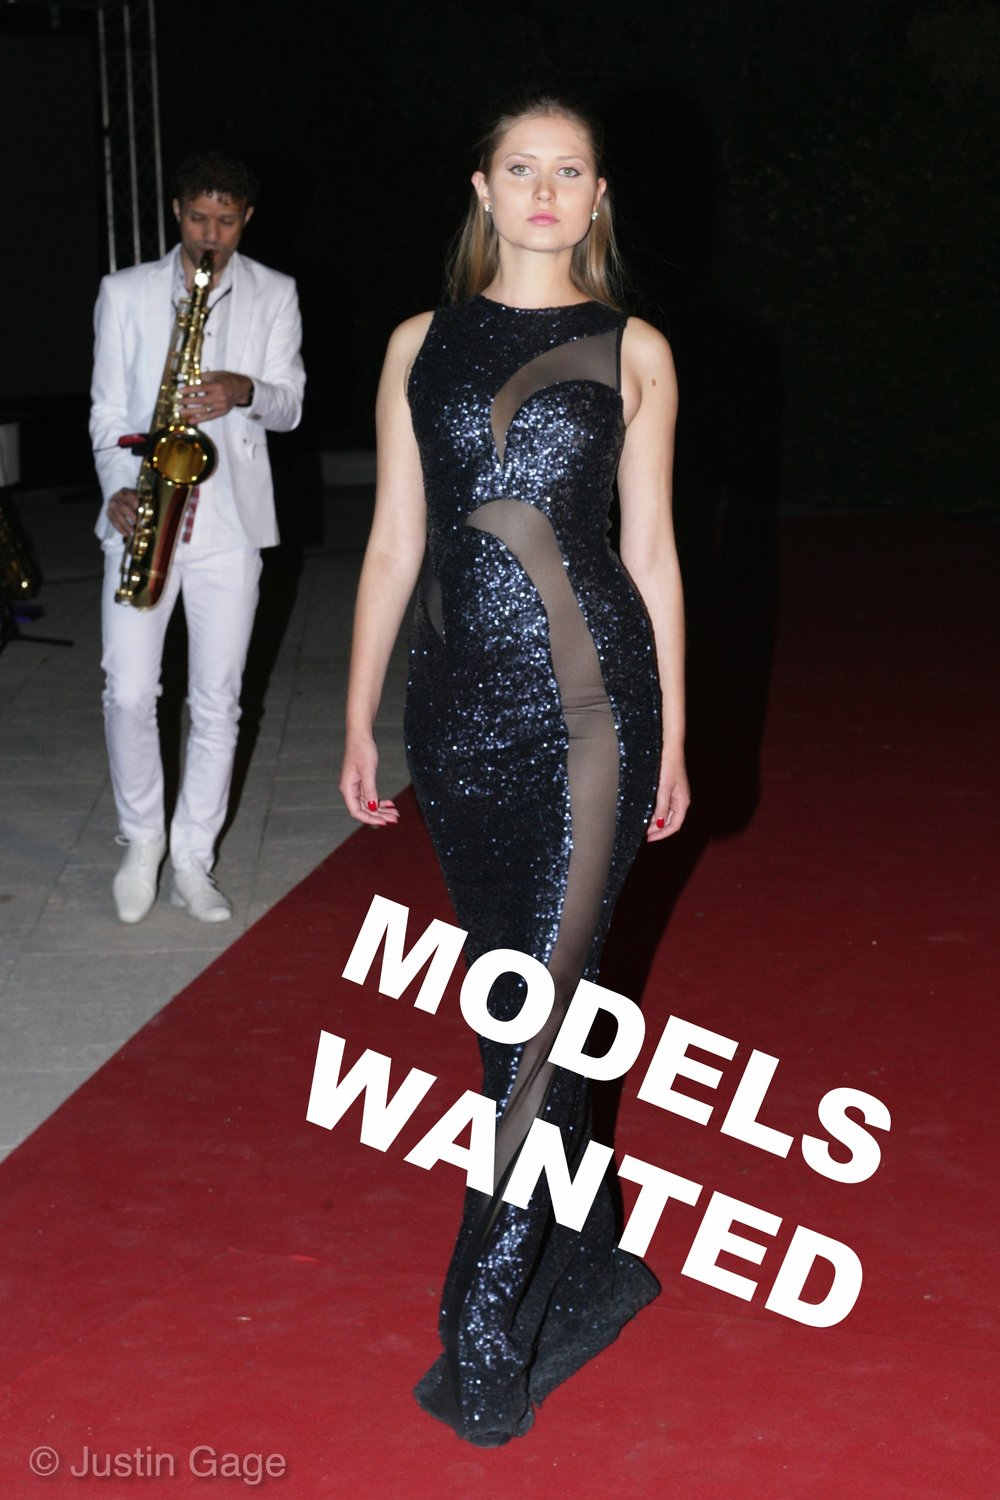 Model in sequin ball gown with a saxophone player behind her